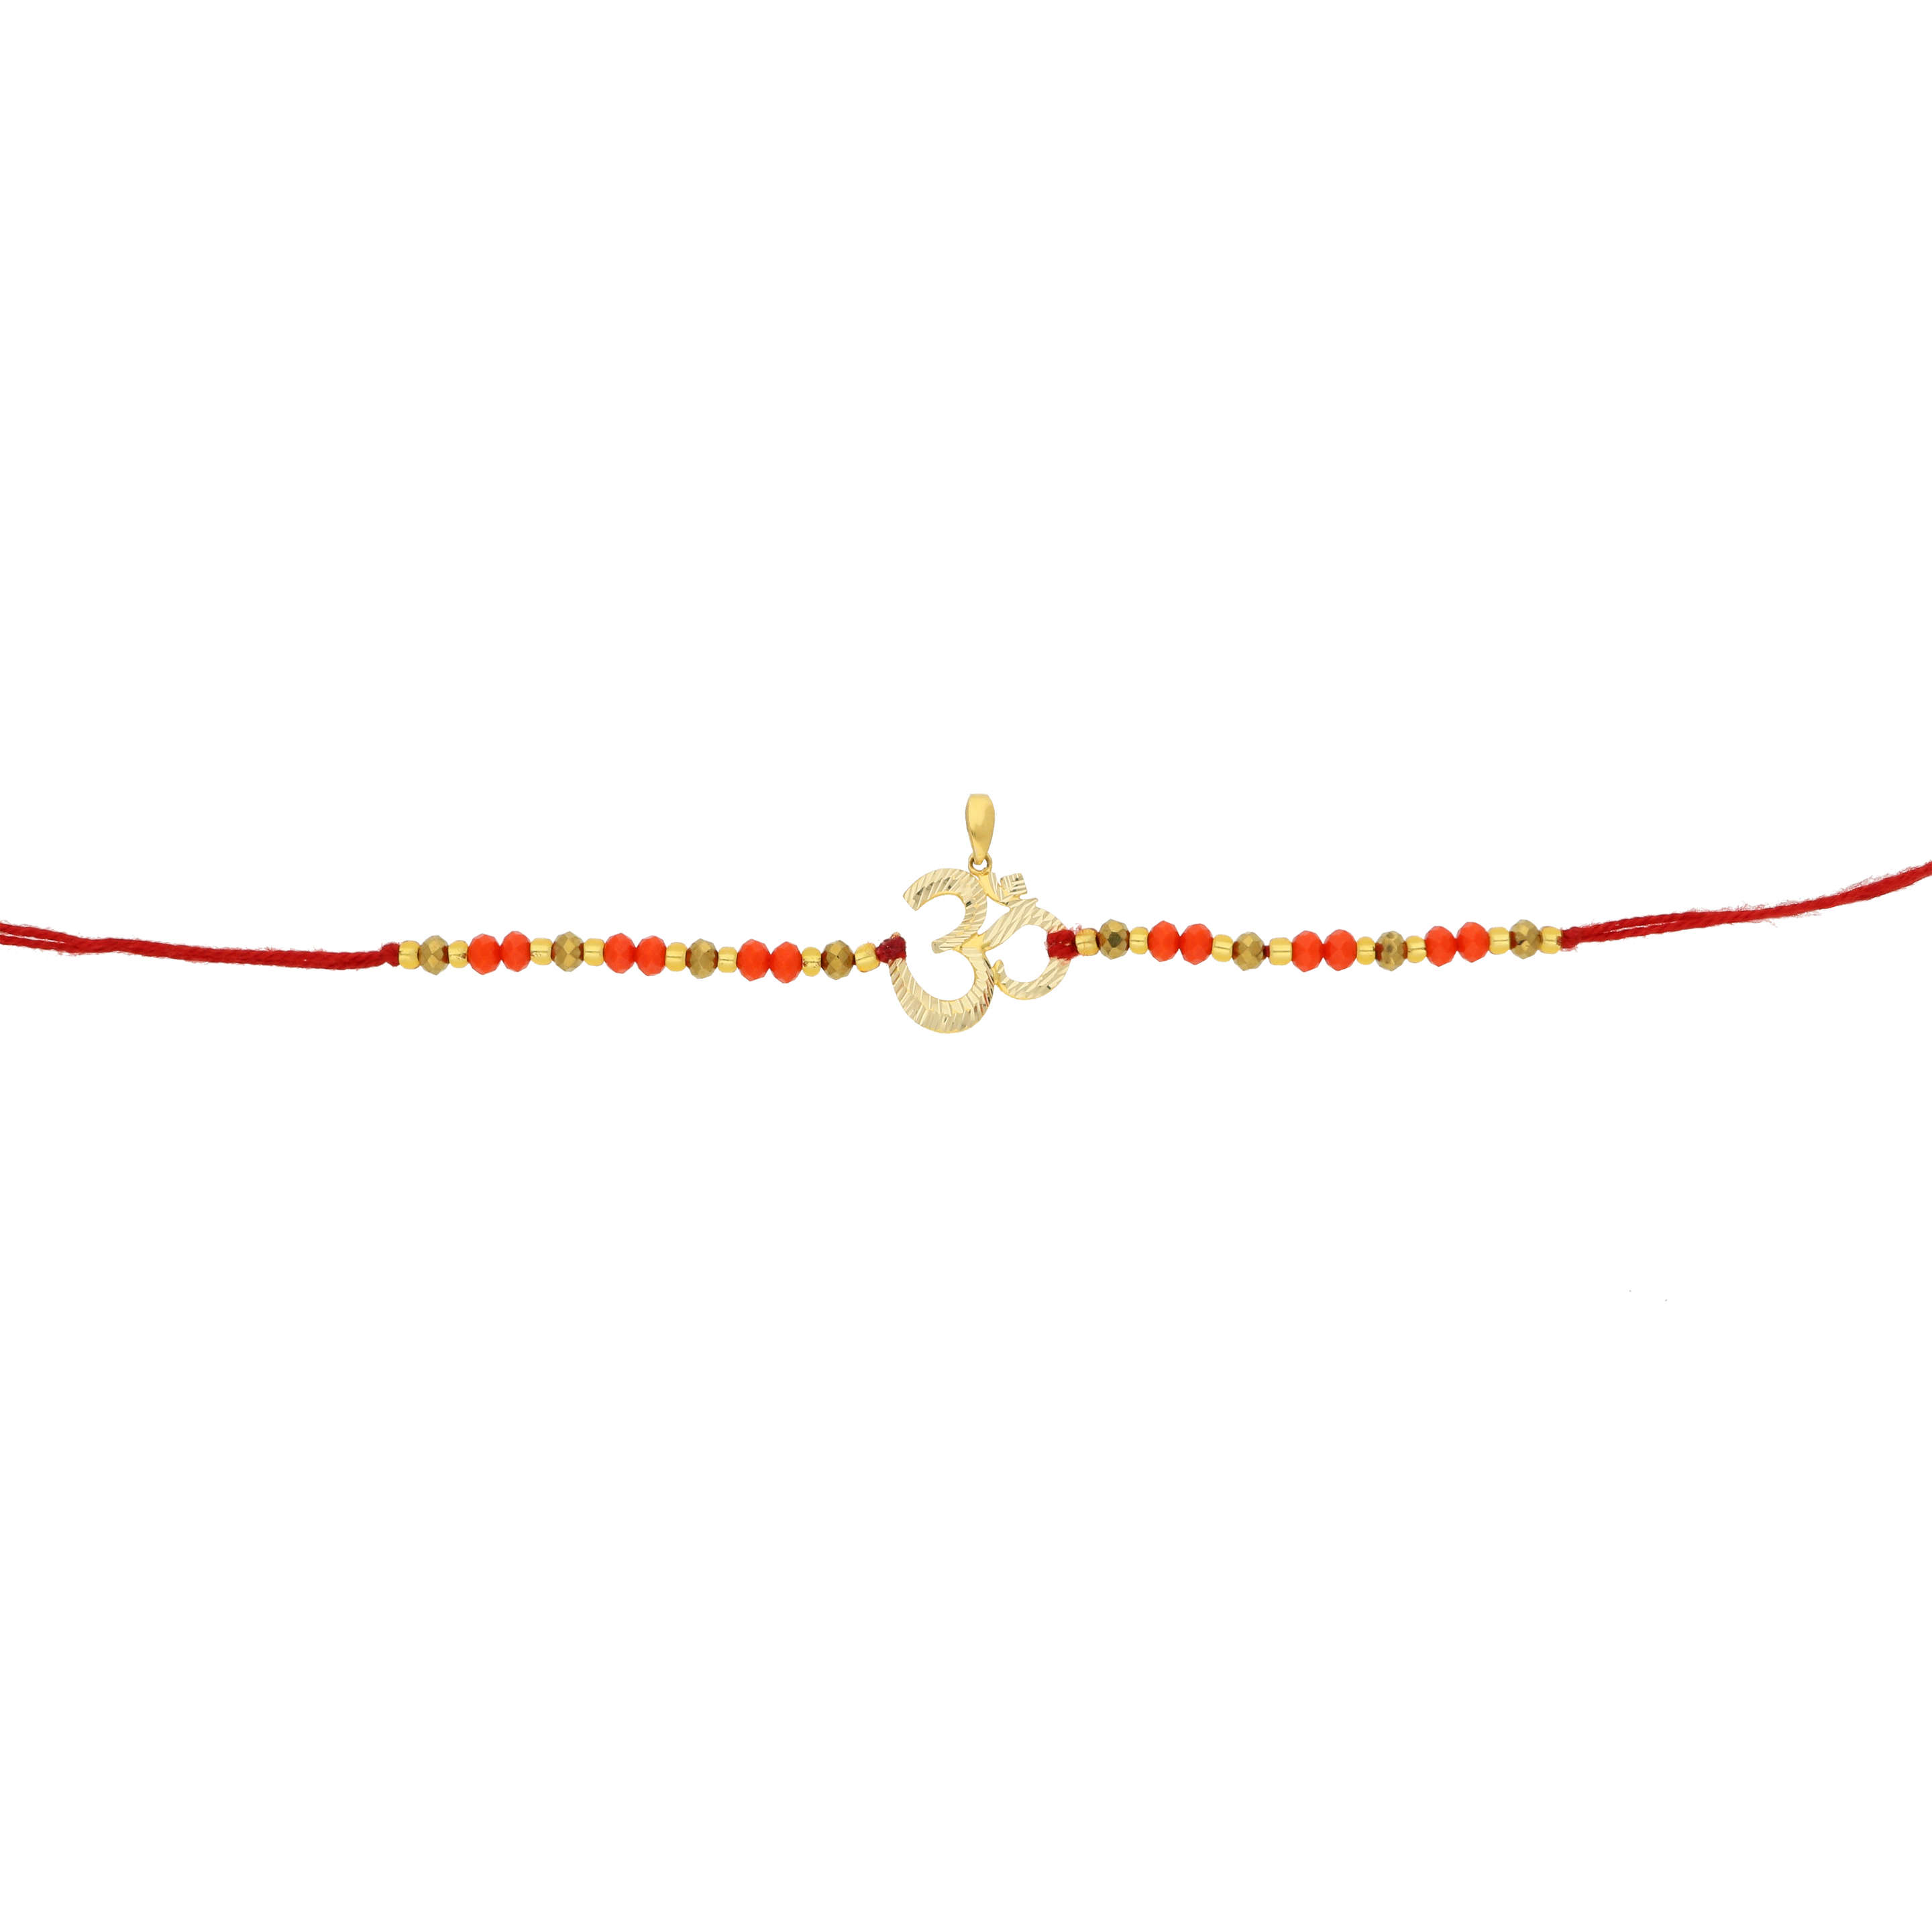 OM inspired rakhi crafted in 18K gold by Aisshpra Gems and Jewels